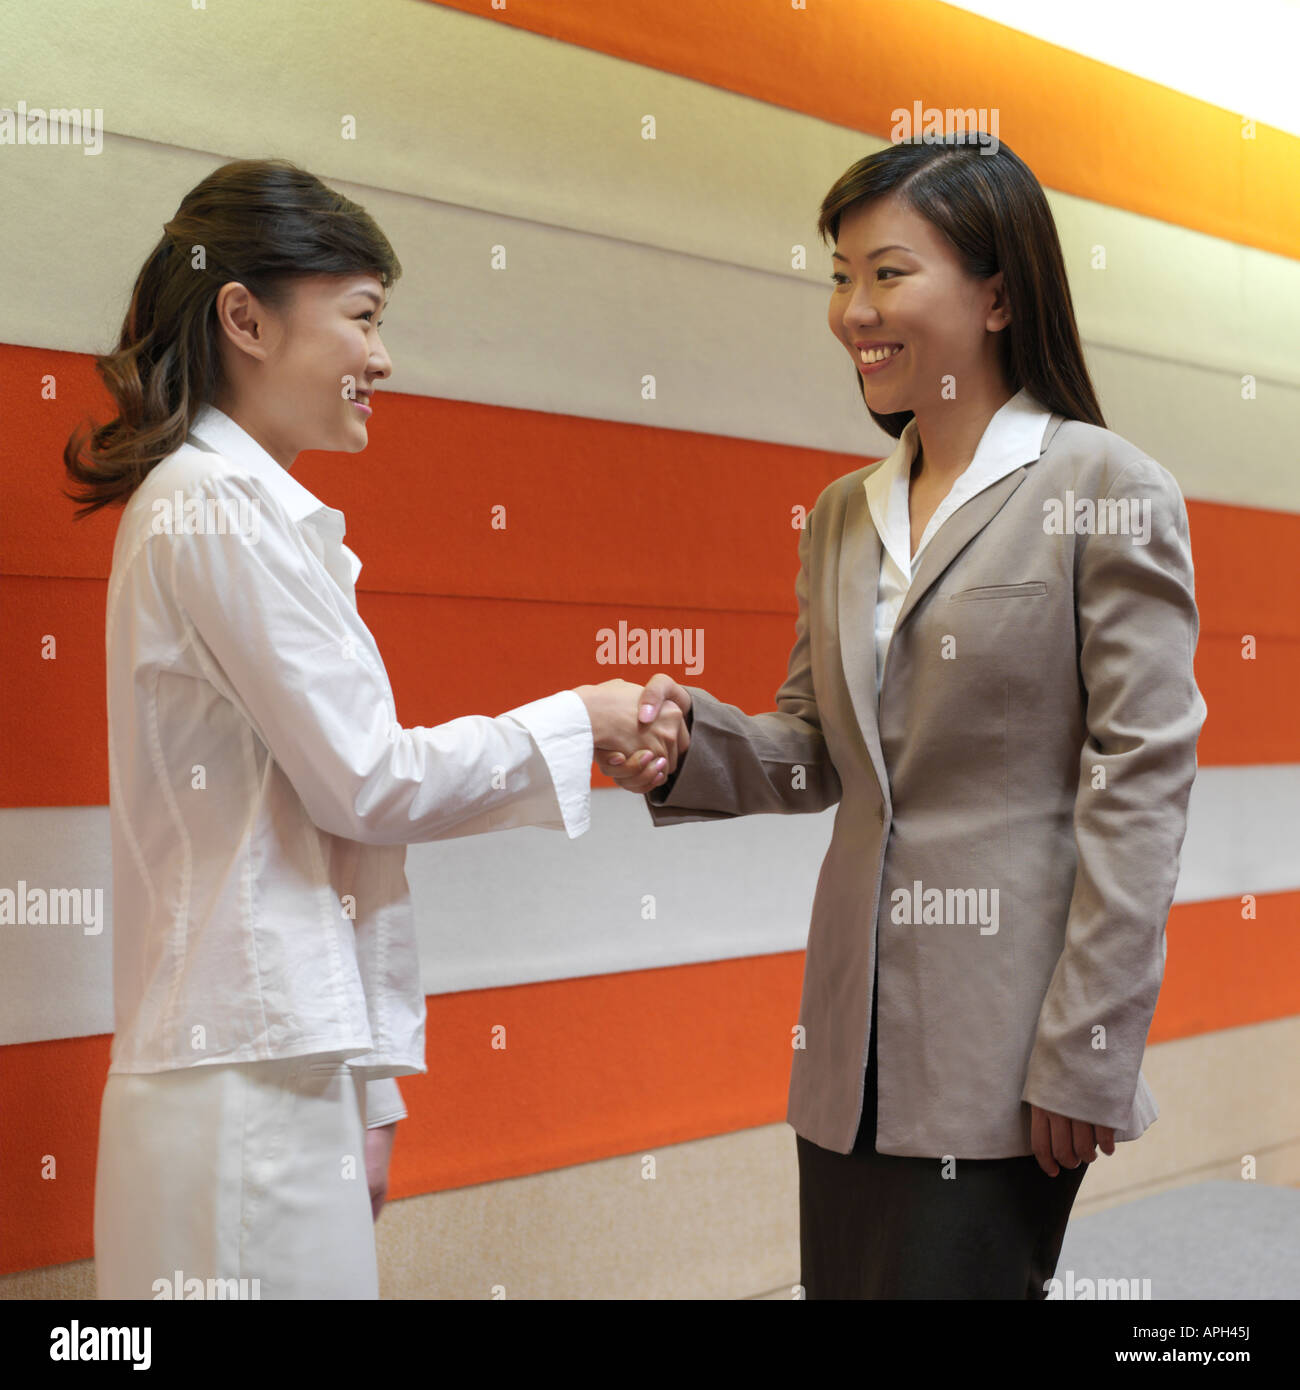 Two businesswomen shaking hands, side view - Stock Image